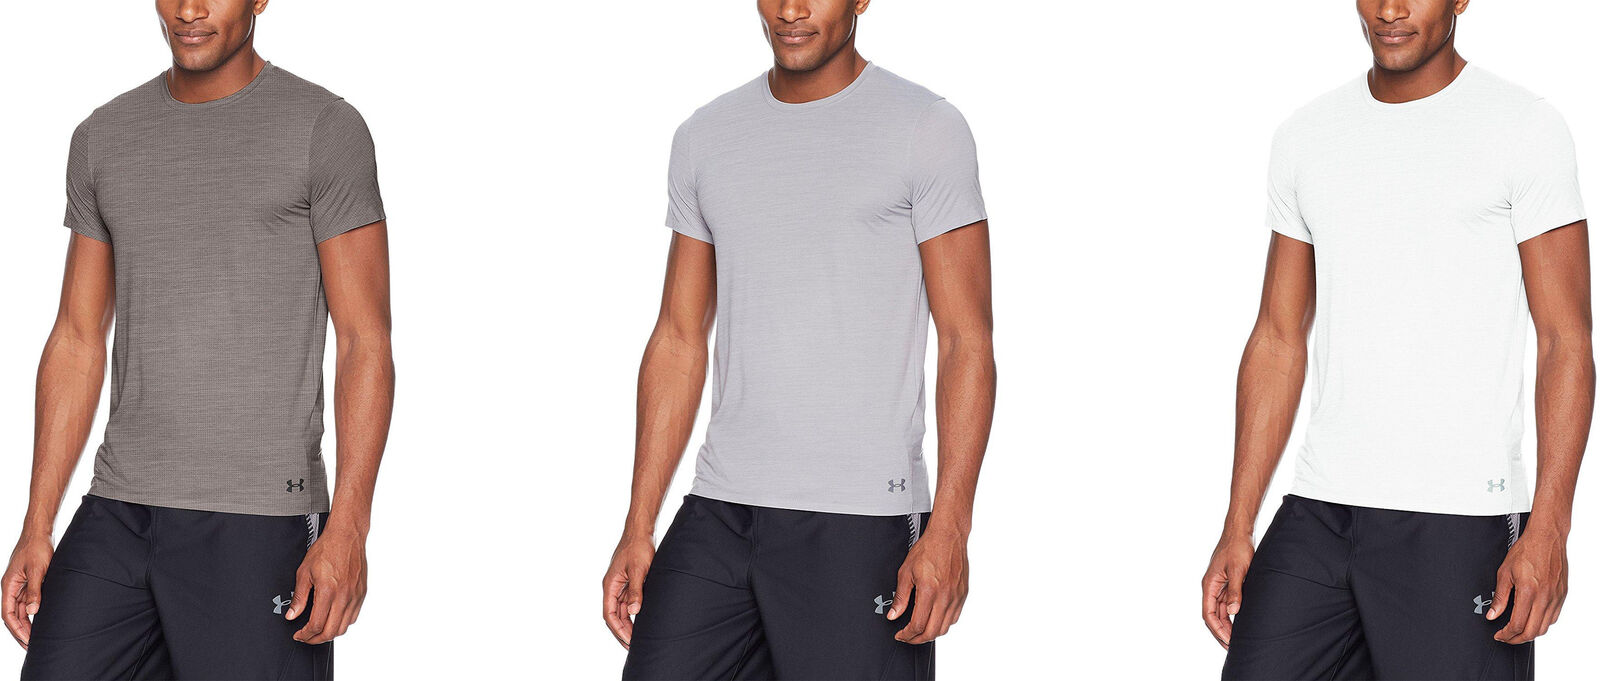 35be66cb13 Details about Under Armour Men's ArmourVent Short Sleeve Crew Tee, 3 Colors